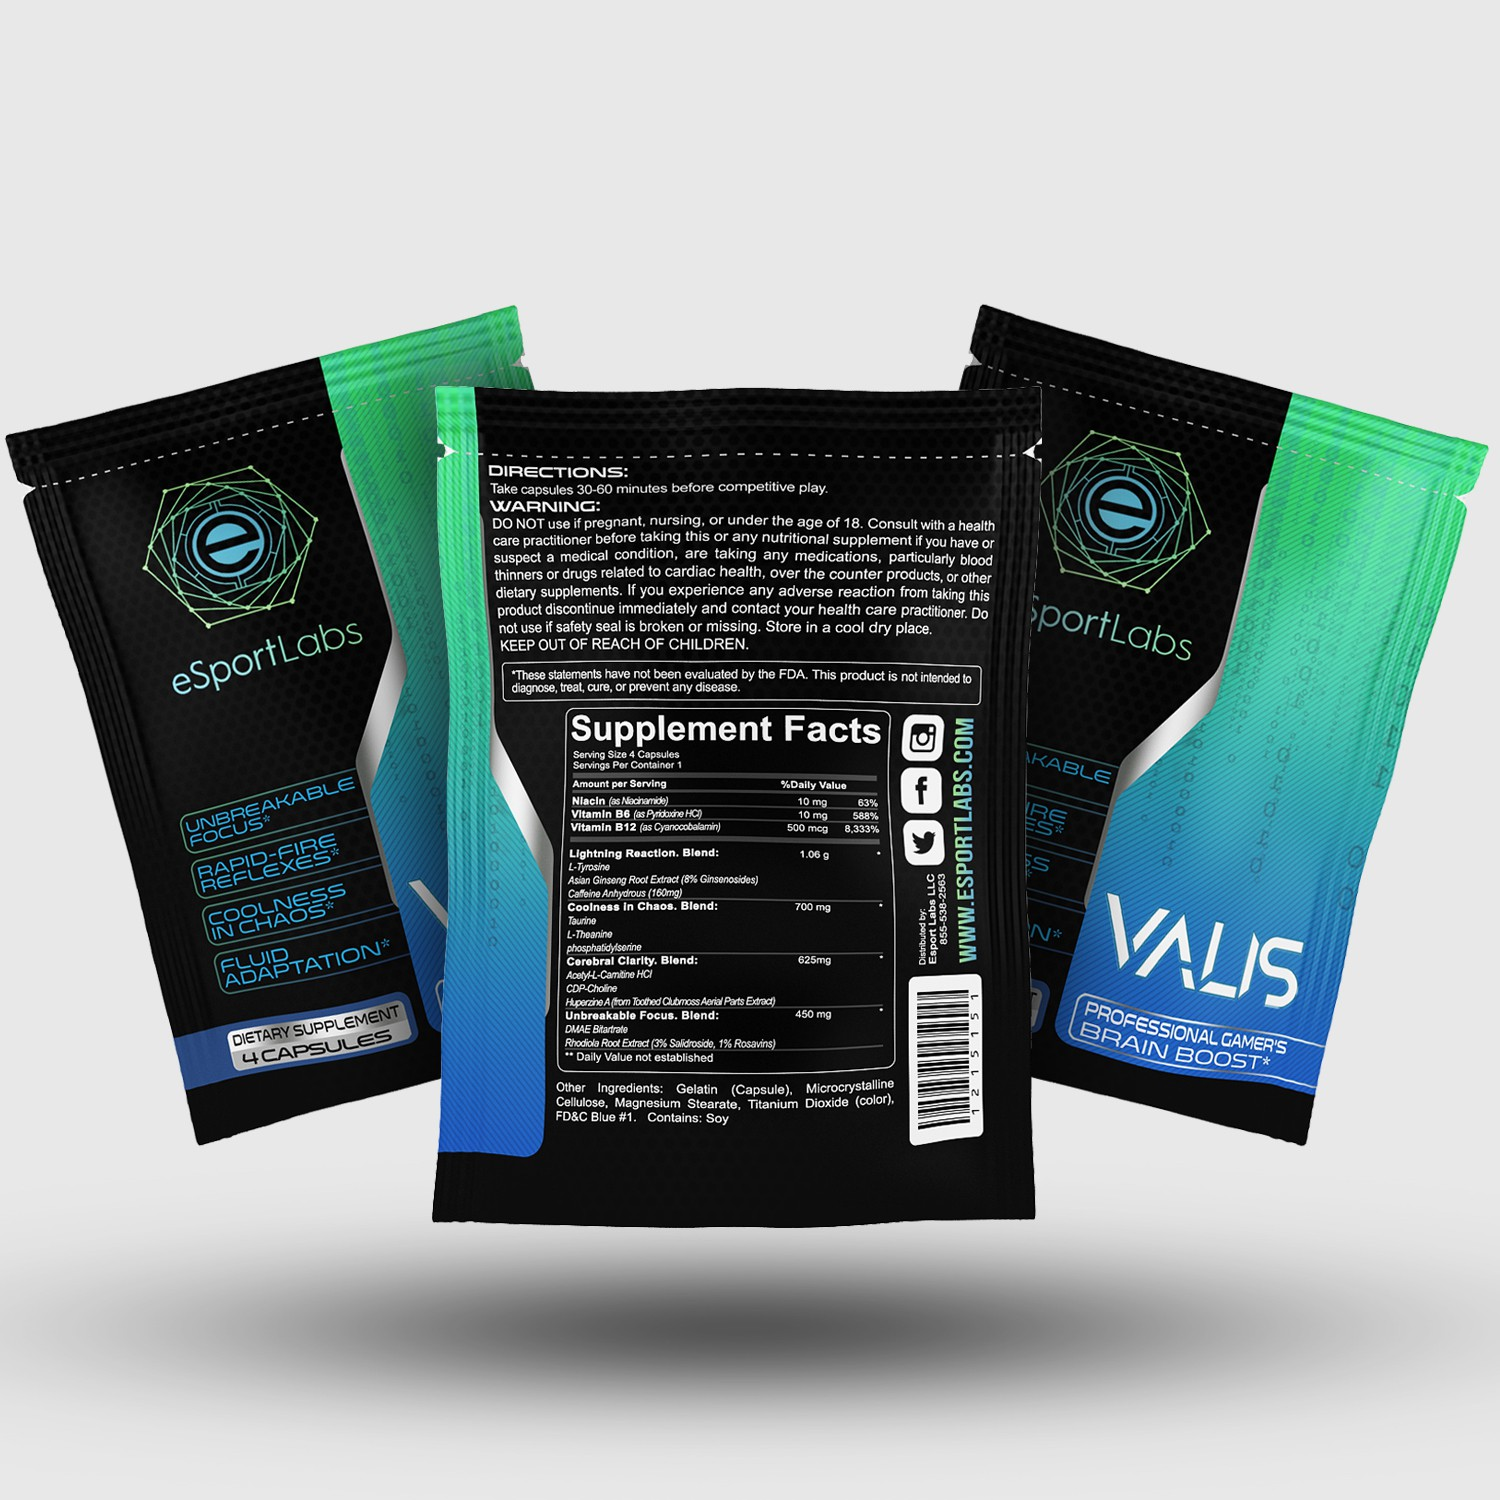 Packaging for Free Sample of Valis